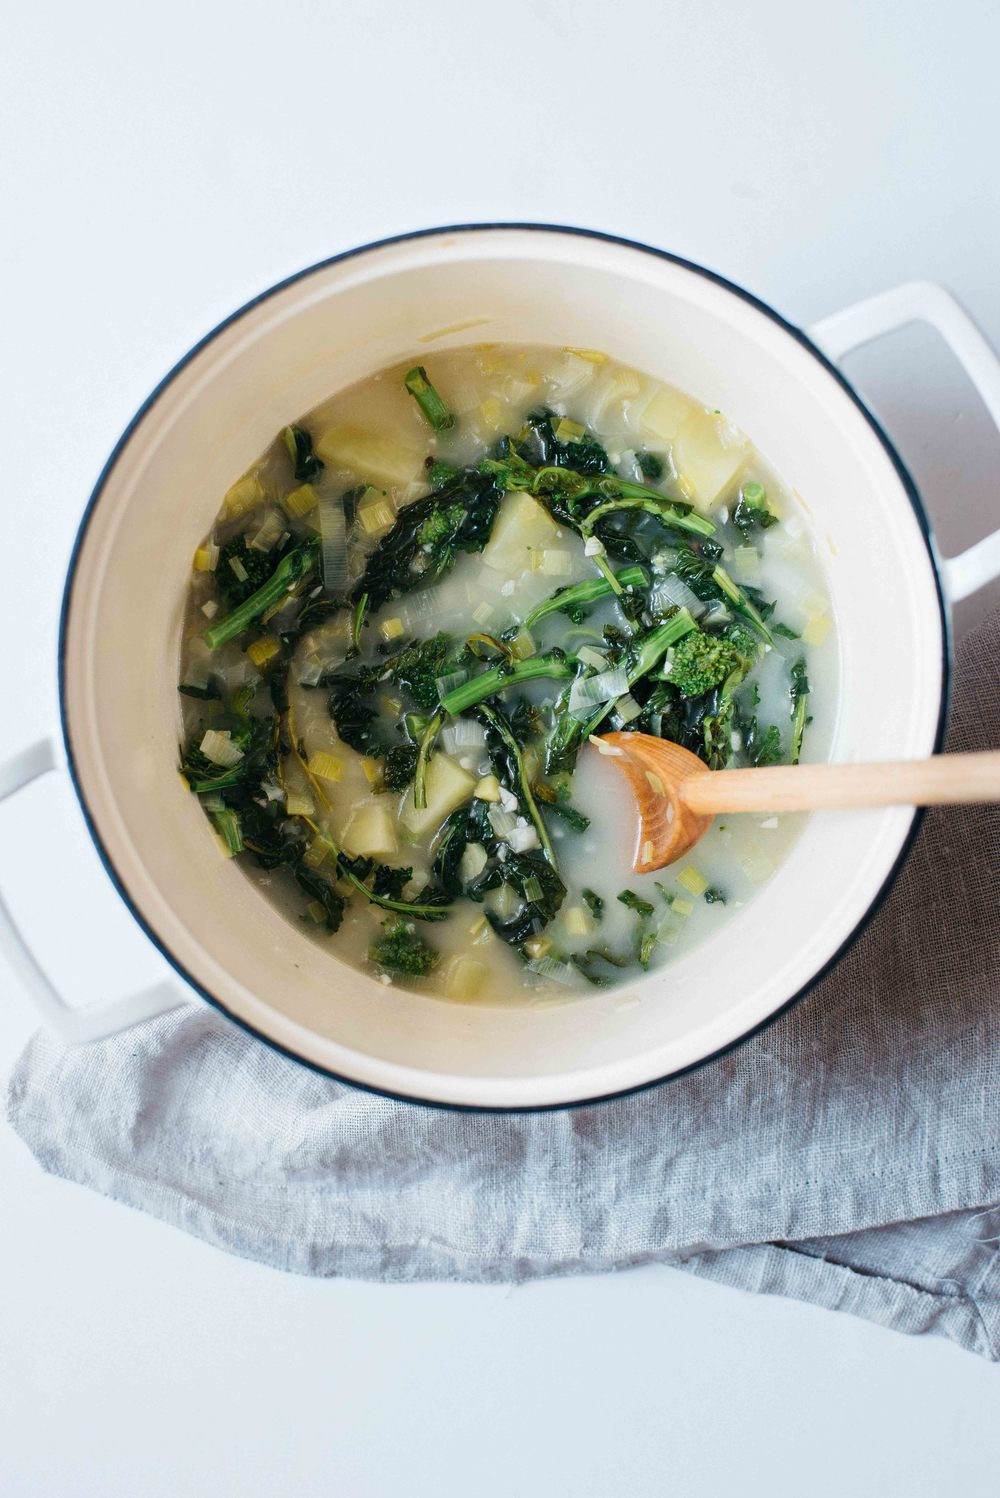 creamy broccoli rabe soup w/ crispy quinoa + yogurt